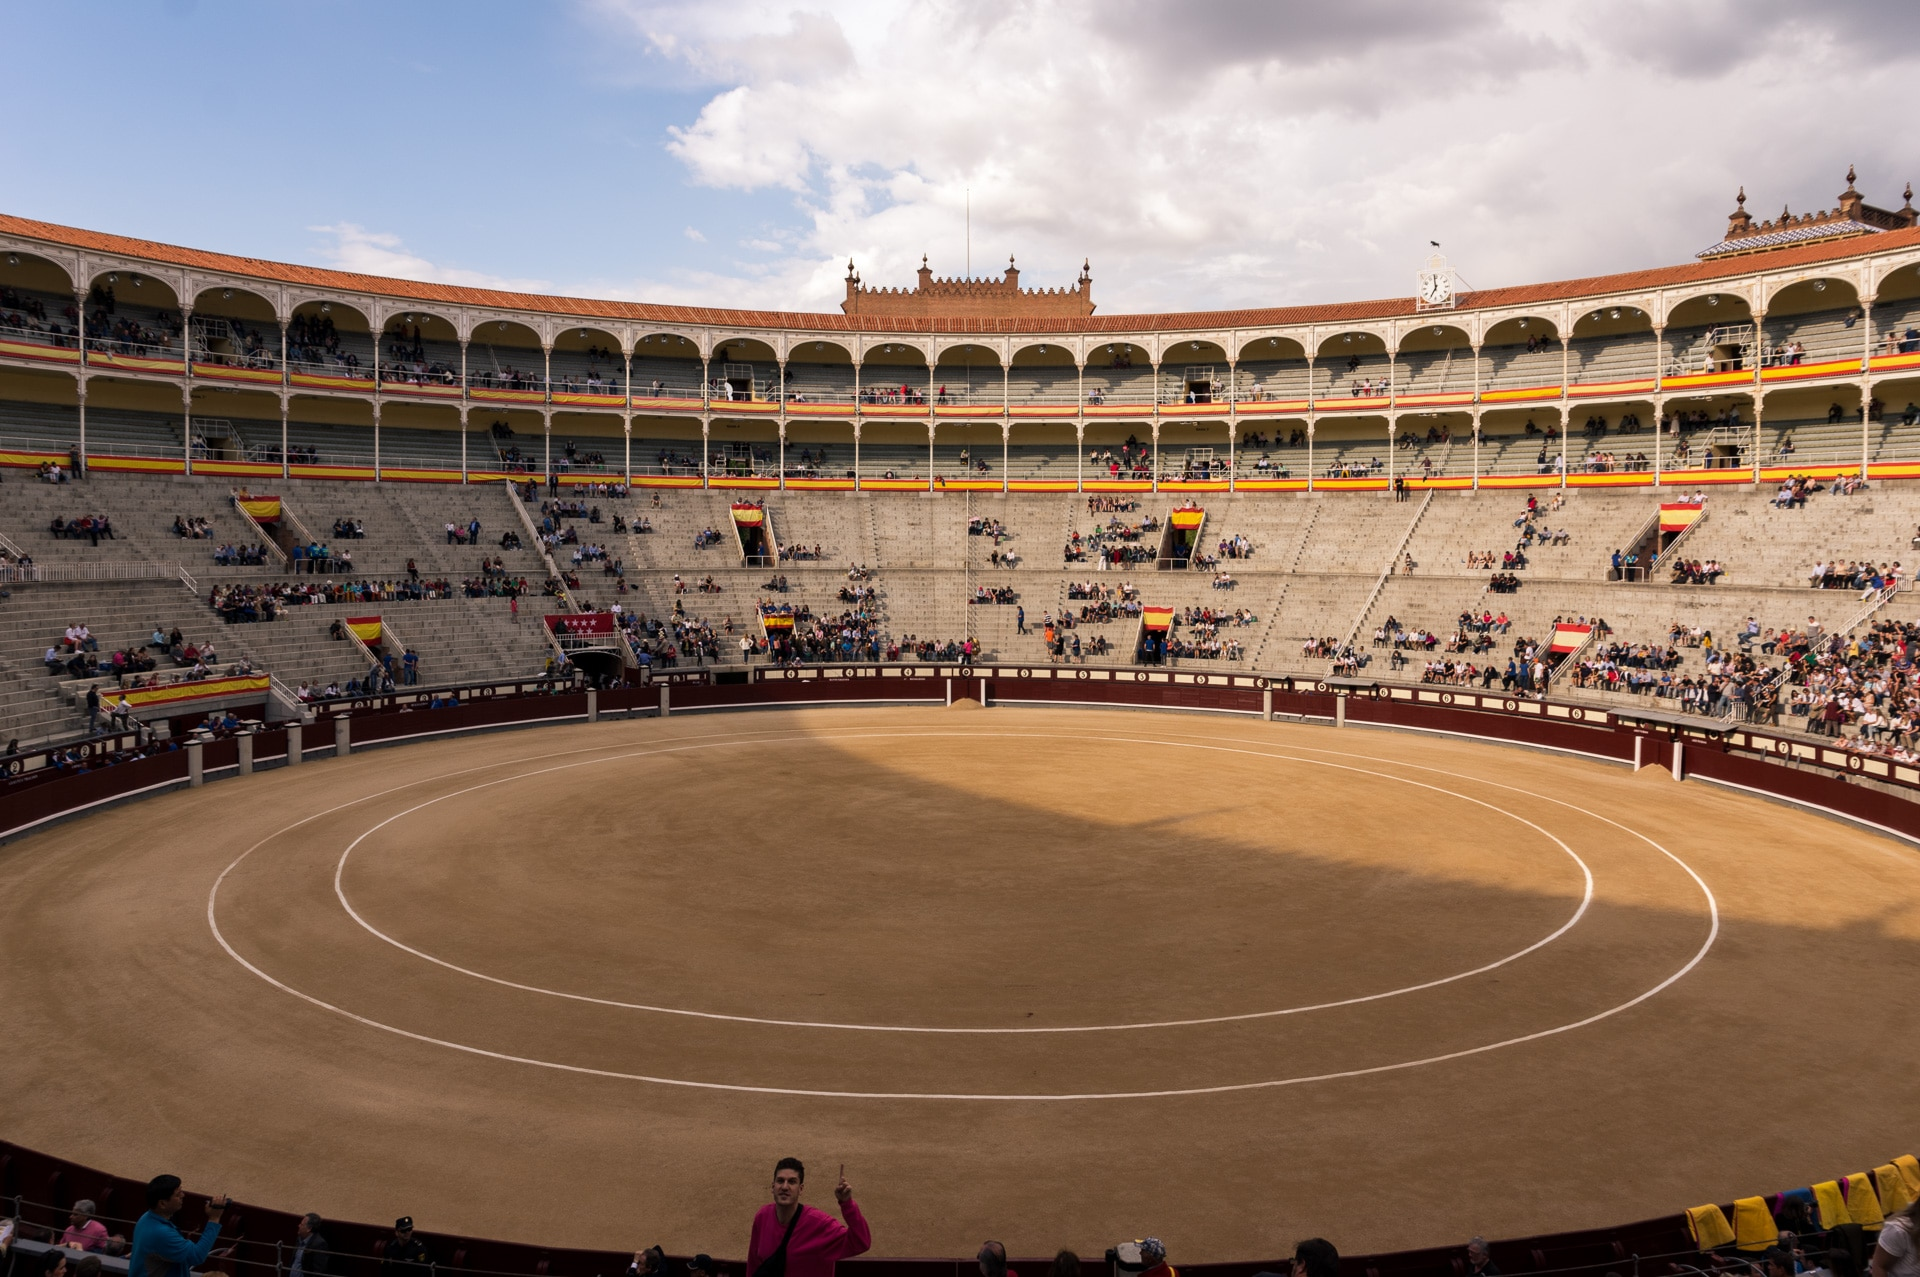 The ring before the start of a bullfight in the afternoon